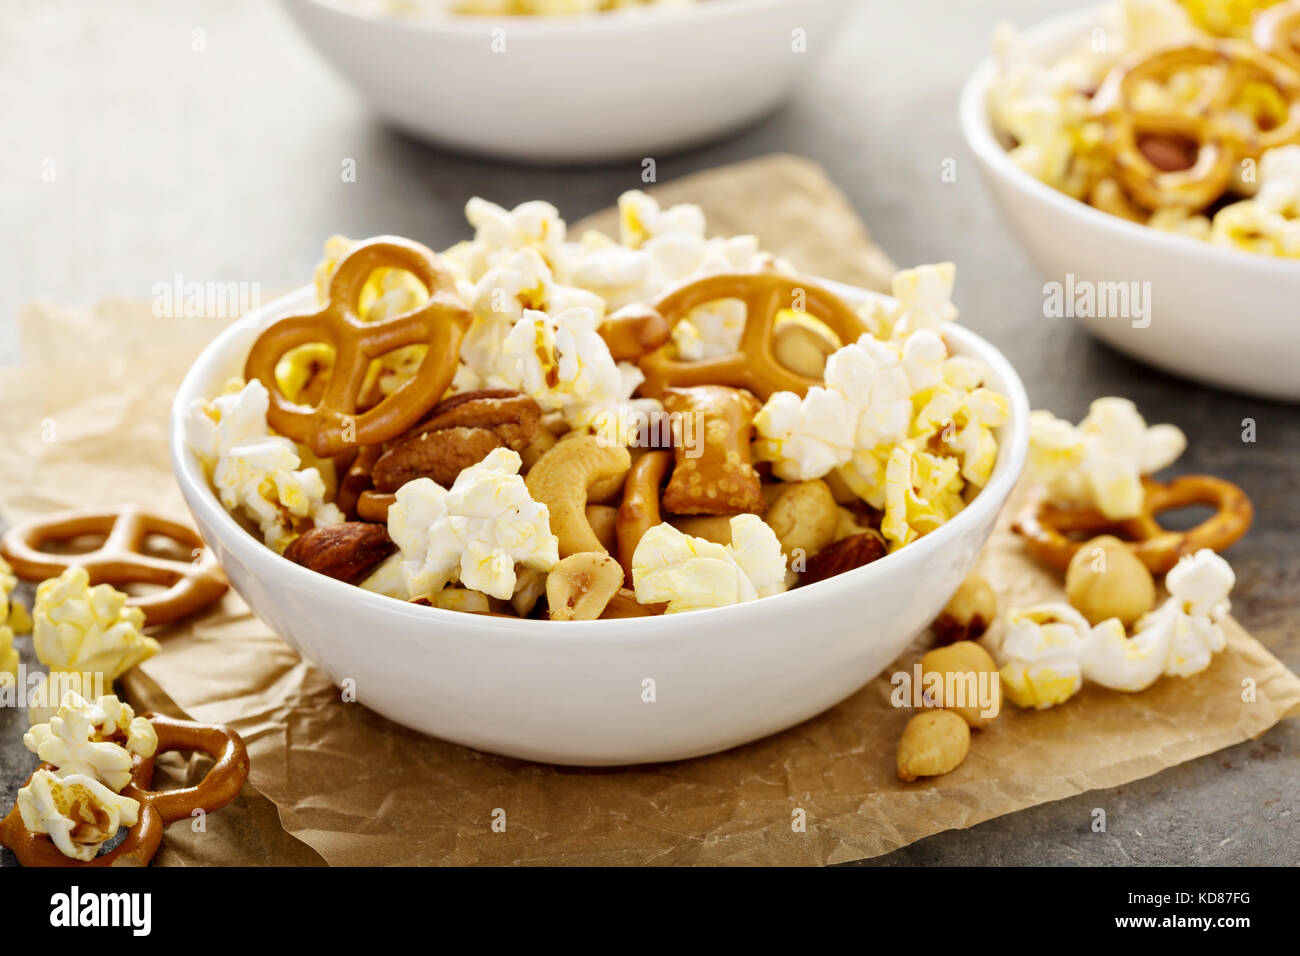 Homemade trail mix with popcorn, pretzels and nuts - Stock Image